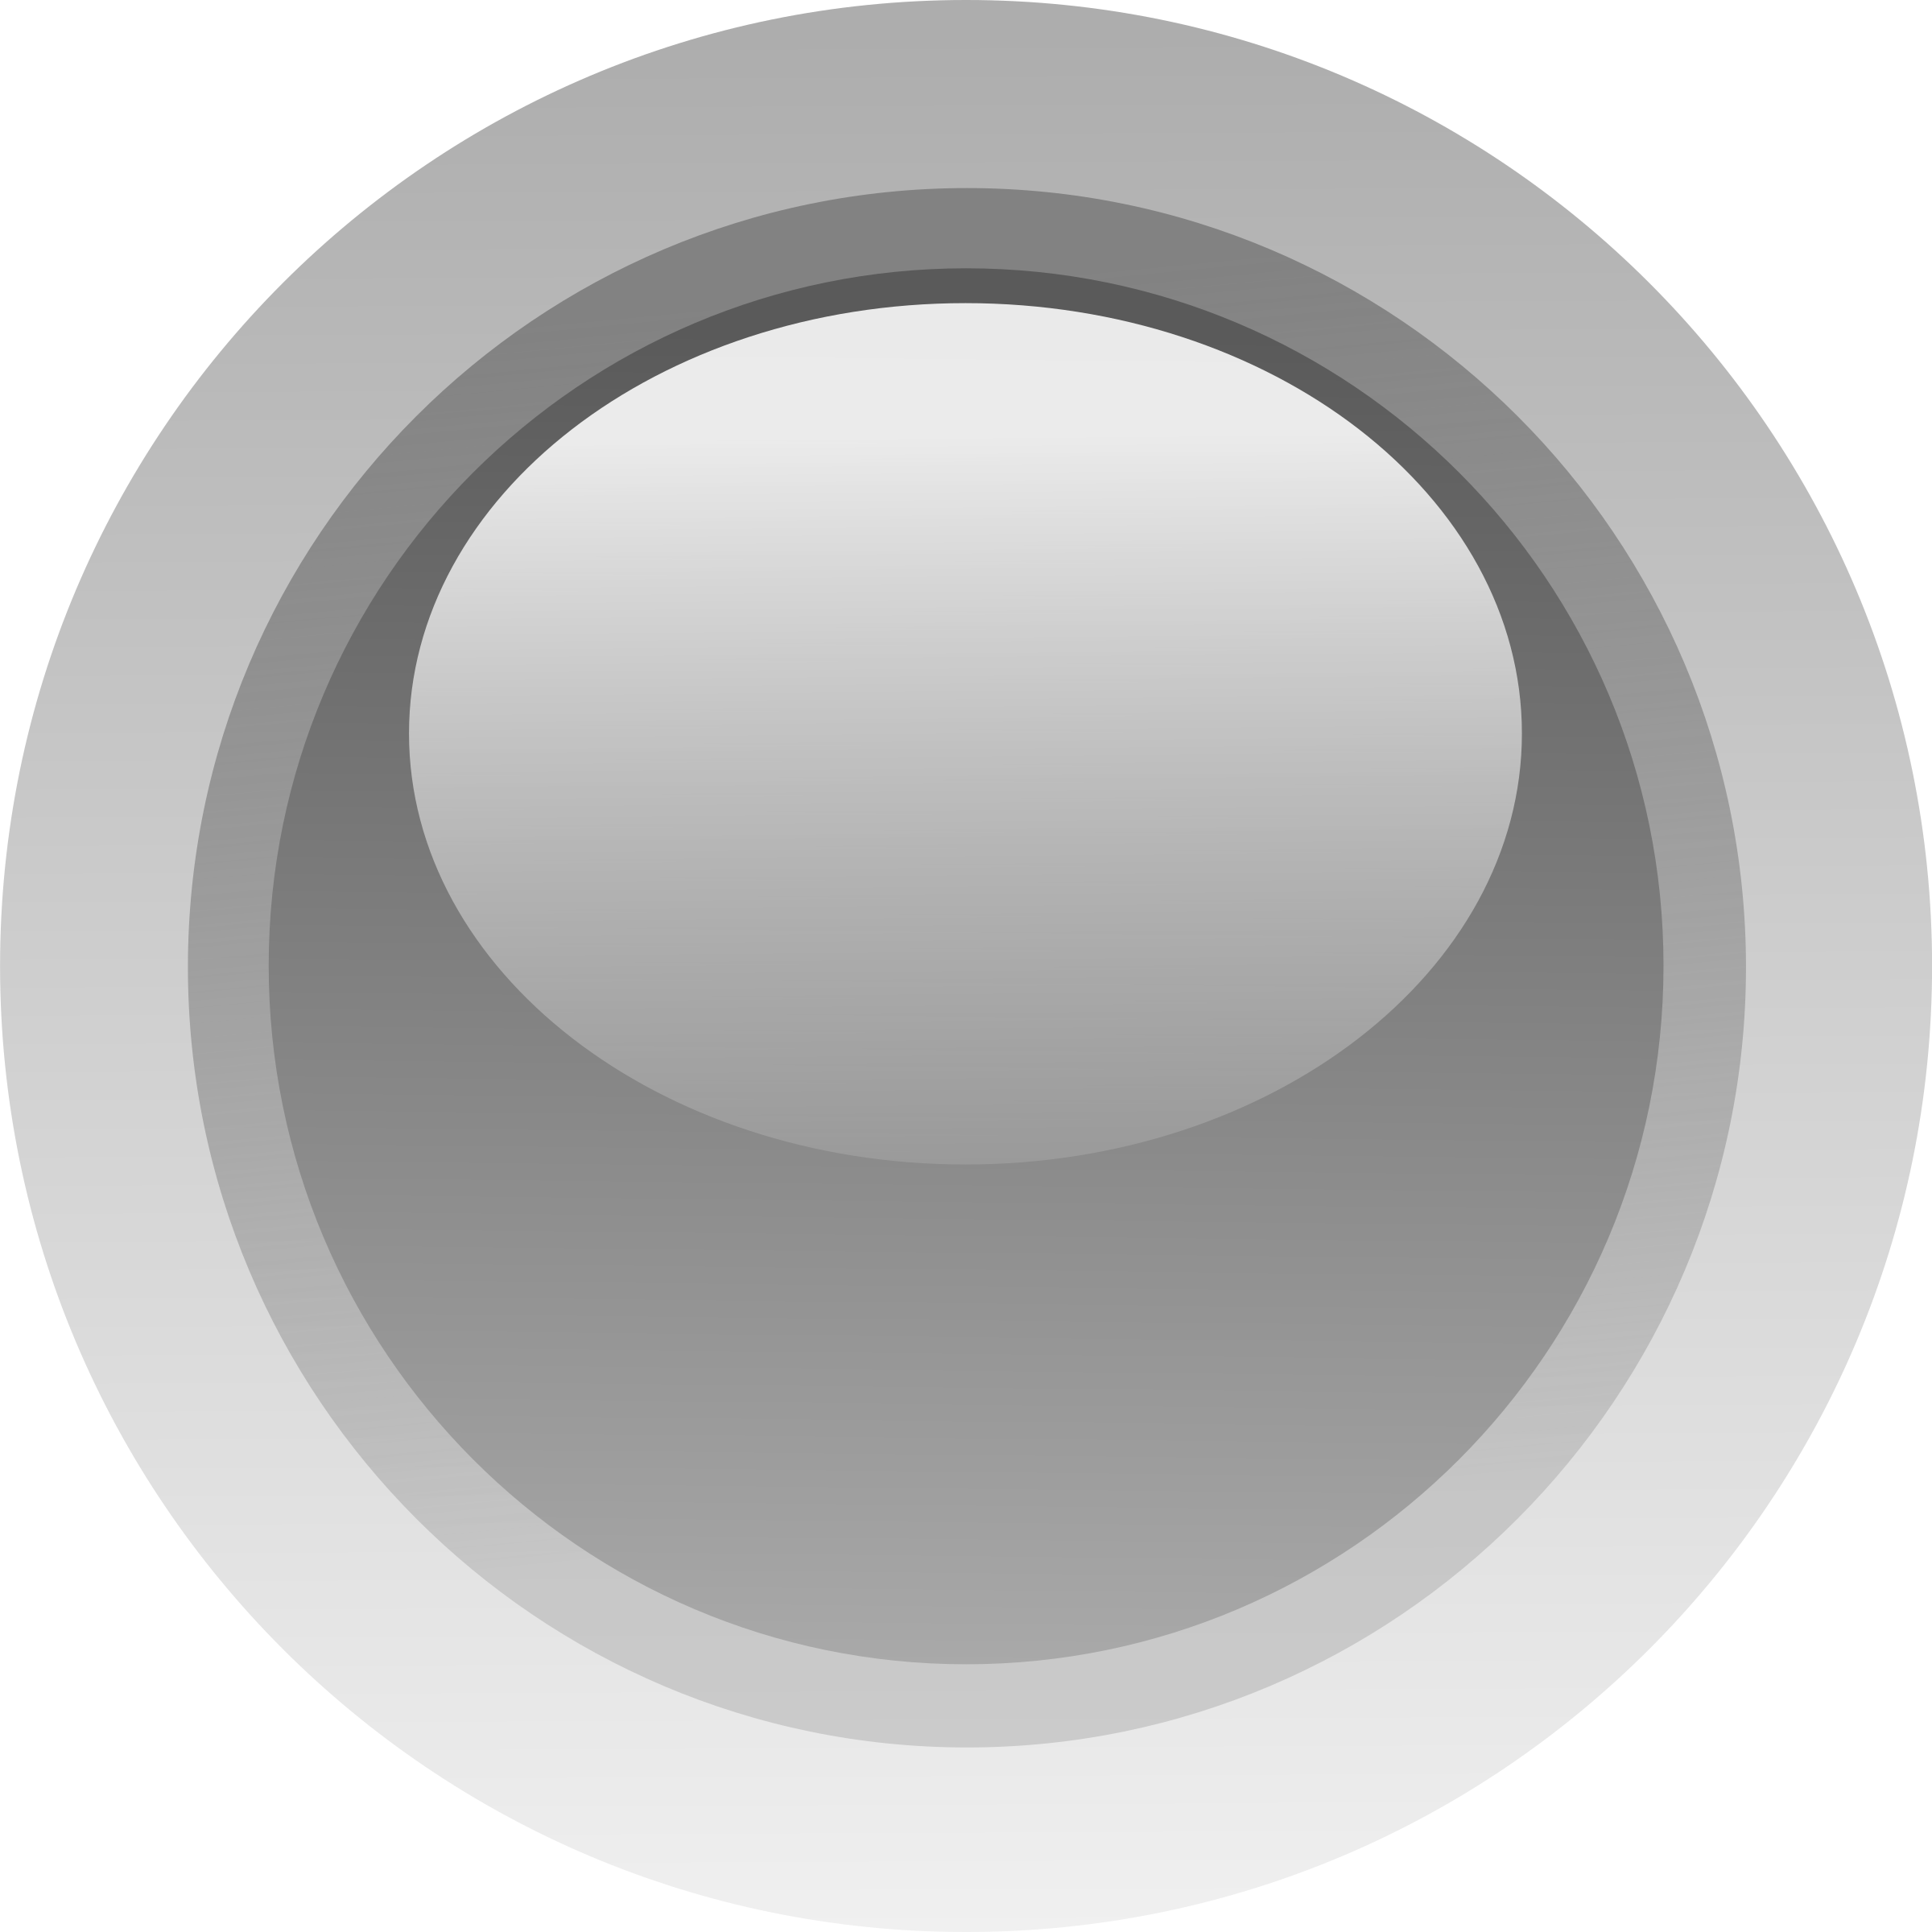 Grey circle png. Led icons free and